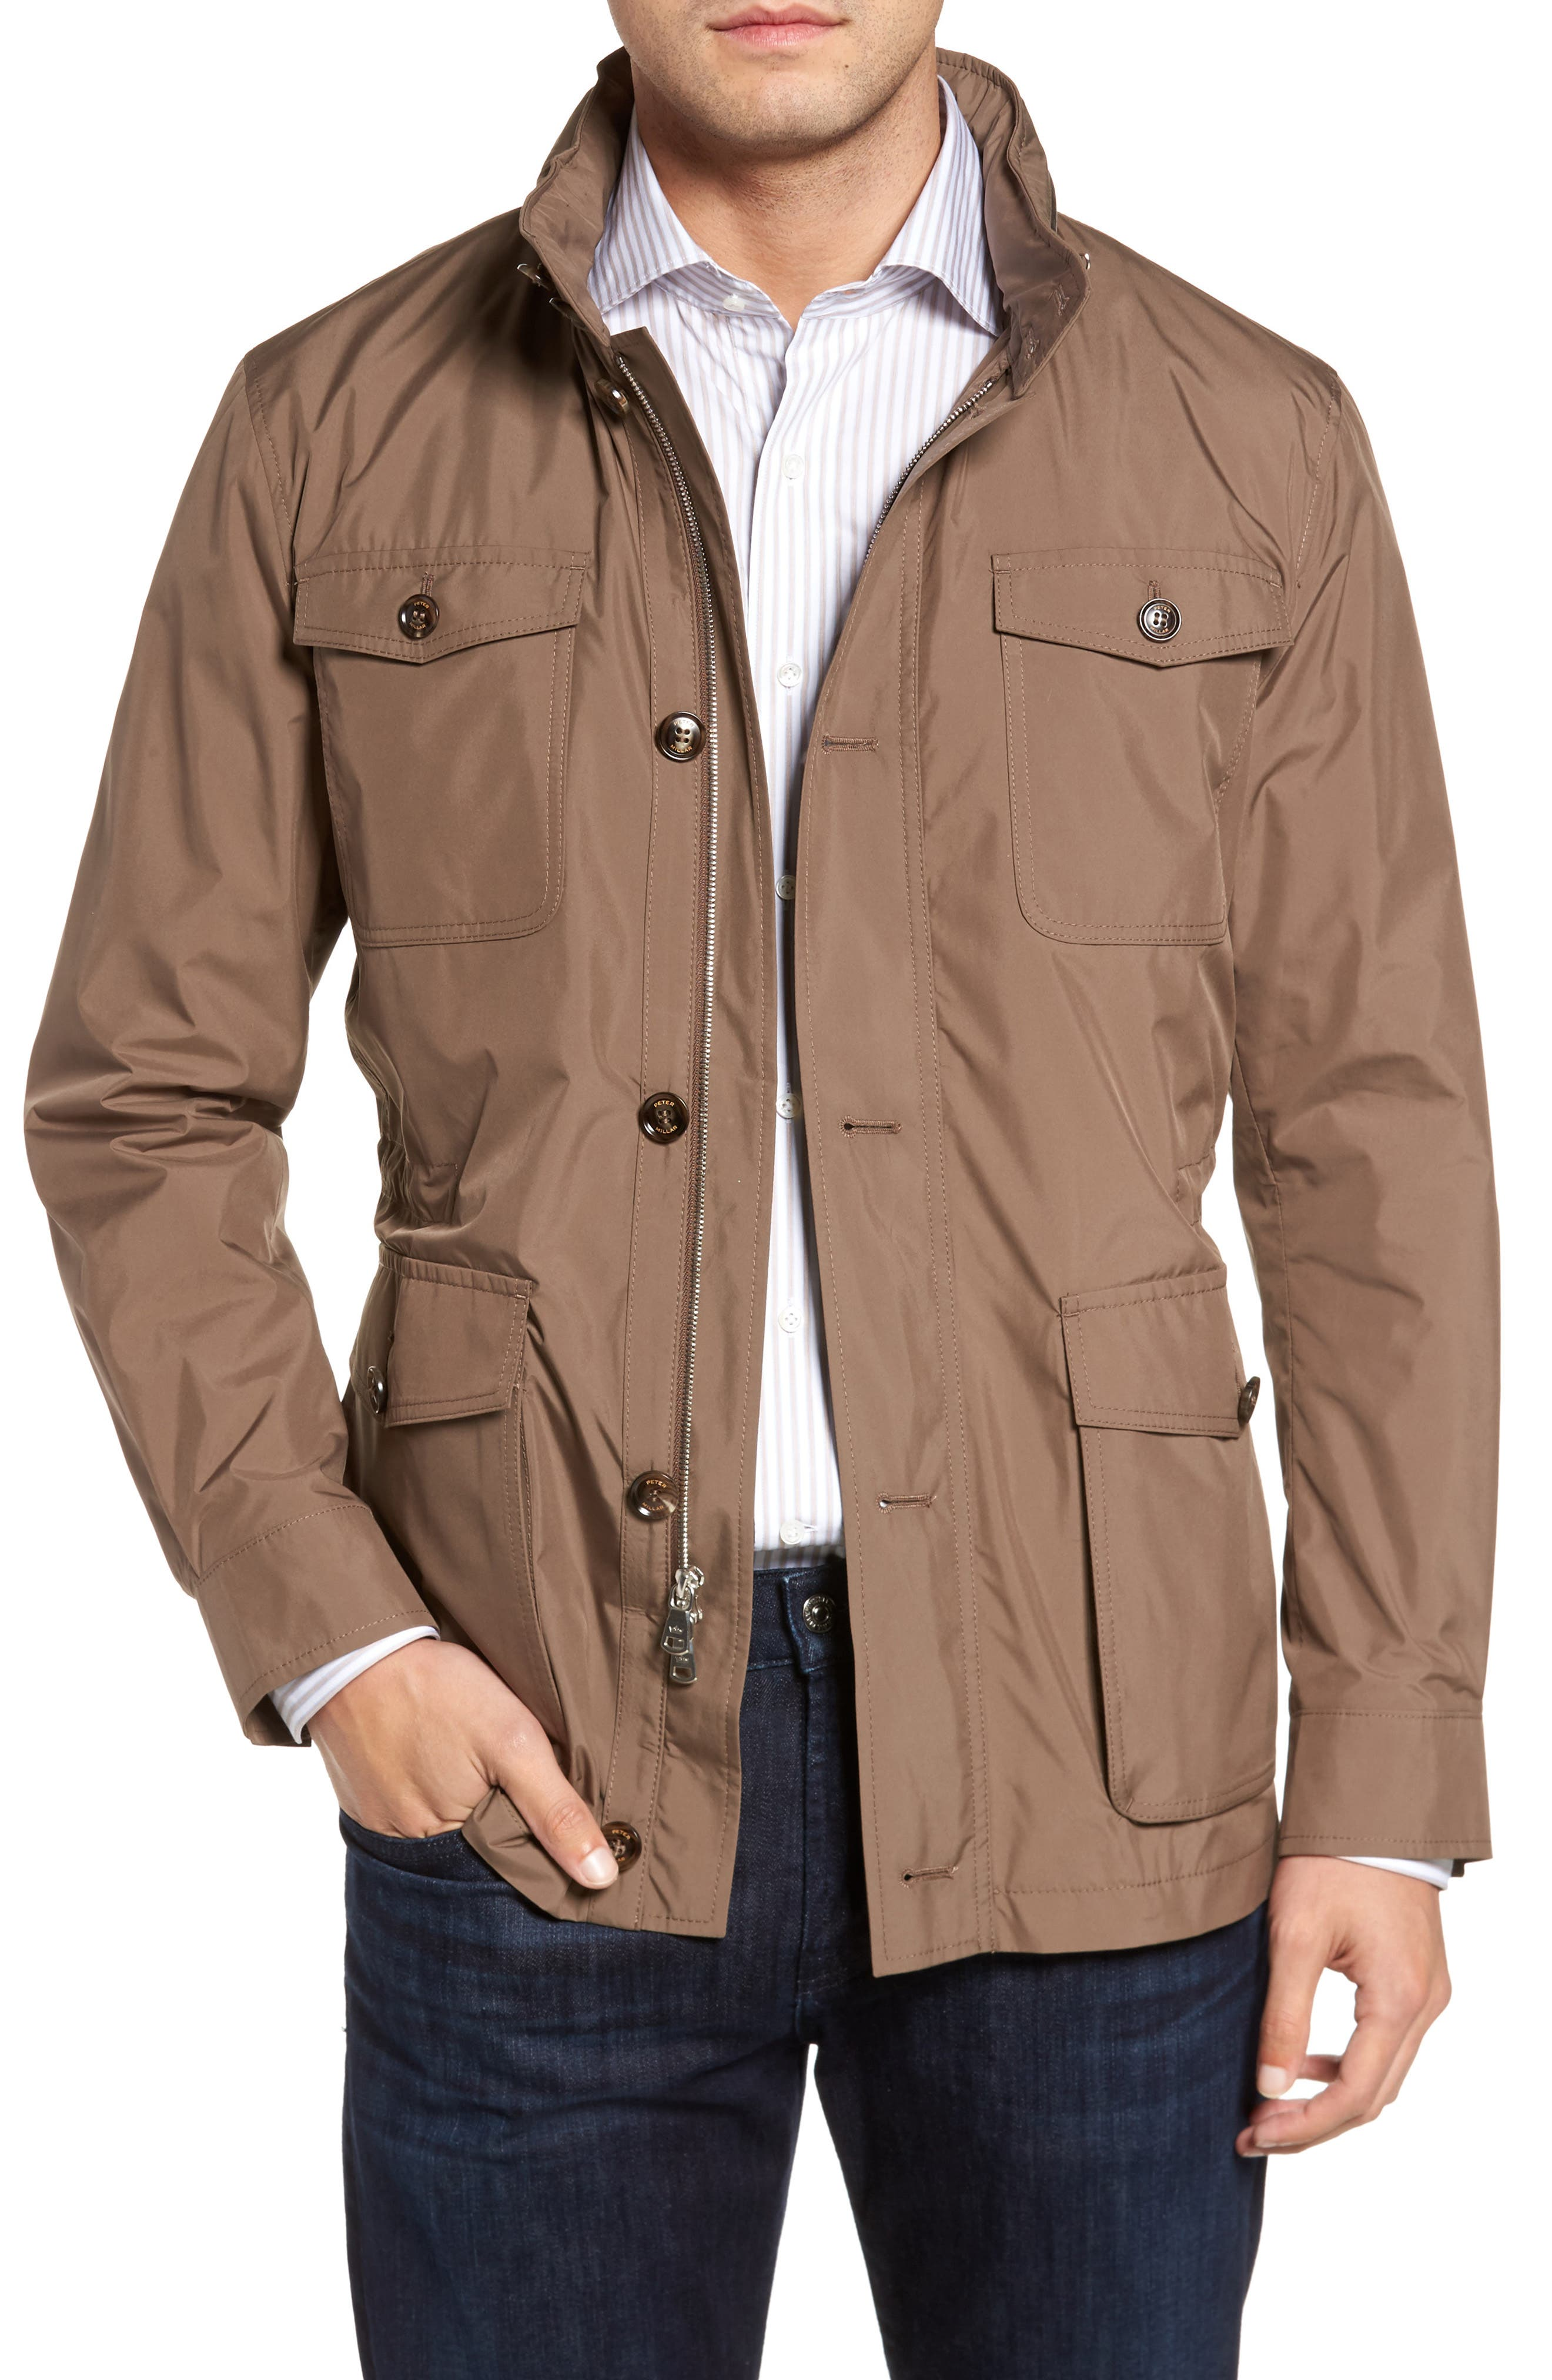 All Weather Discovery Jacket,                             Main thumbnail 1, color,                             240